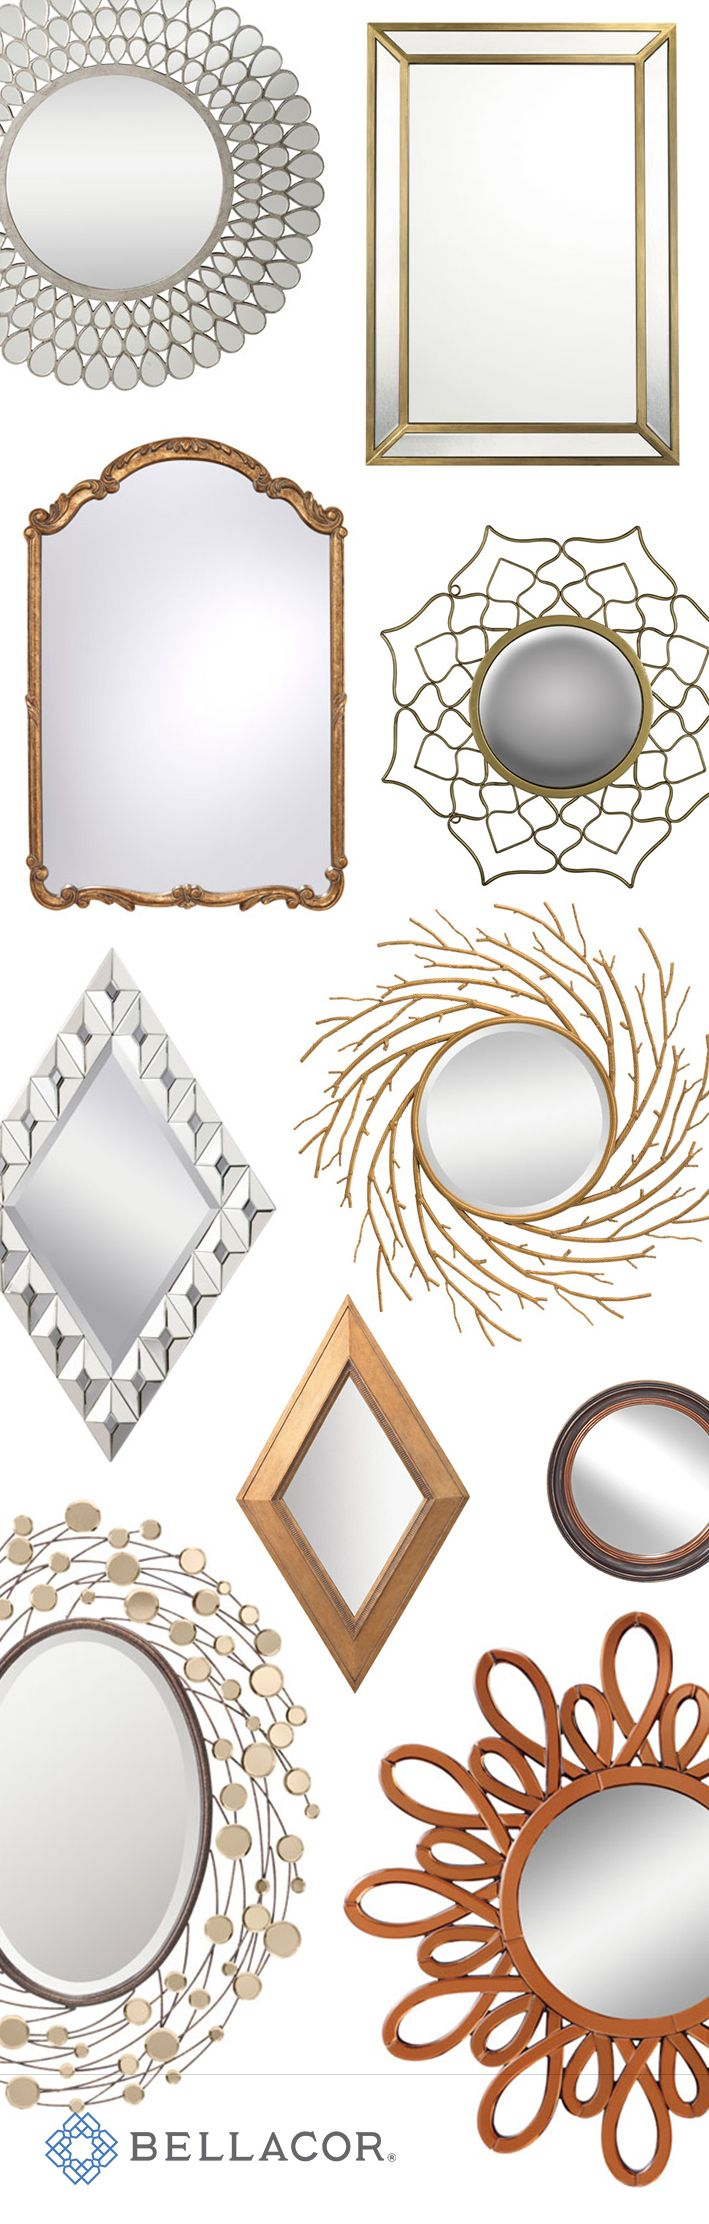 Mirrors give a room style and depth. At Bellacor, you can find thousands of mirrors from all of the top brands. Now, for a limited-time you can save up to 70% on your favorite mirror styles. Plus, we'll ship it for free if your order is over $75. And don't forget about the Bellacor price match guarantee. http://www.bellacor.com/results.cfm?Ns=P_Discount_Margin&N=8164+4294891159+8333+4294862136+8340+8386&No=0&Nso=0&itemid=1672323&partid=social_pinterestad_holiday_mirrors